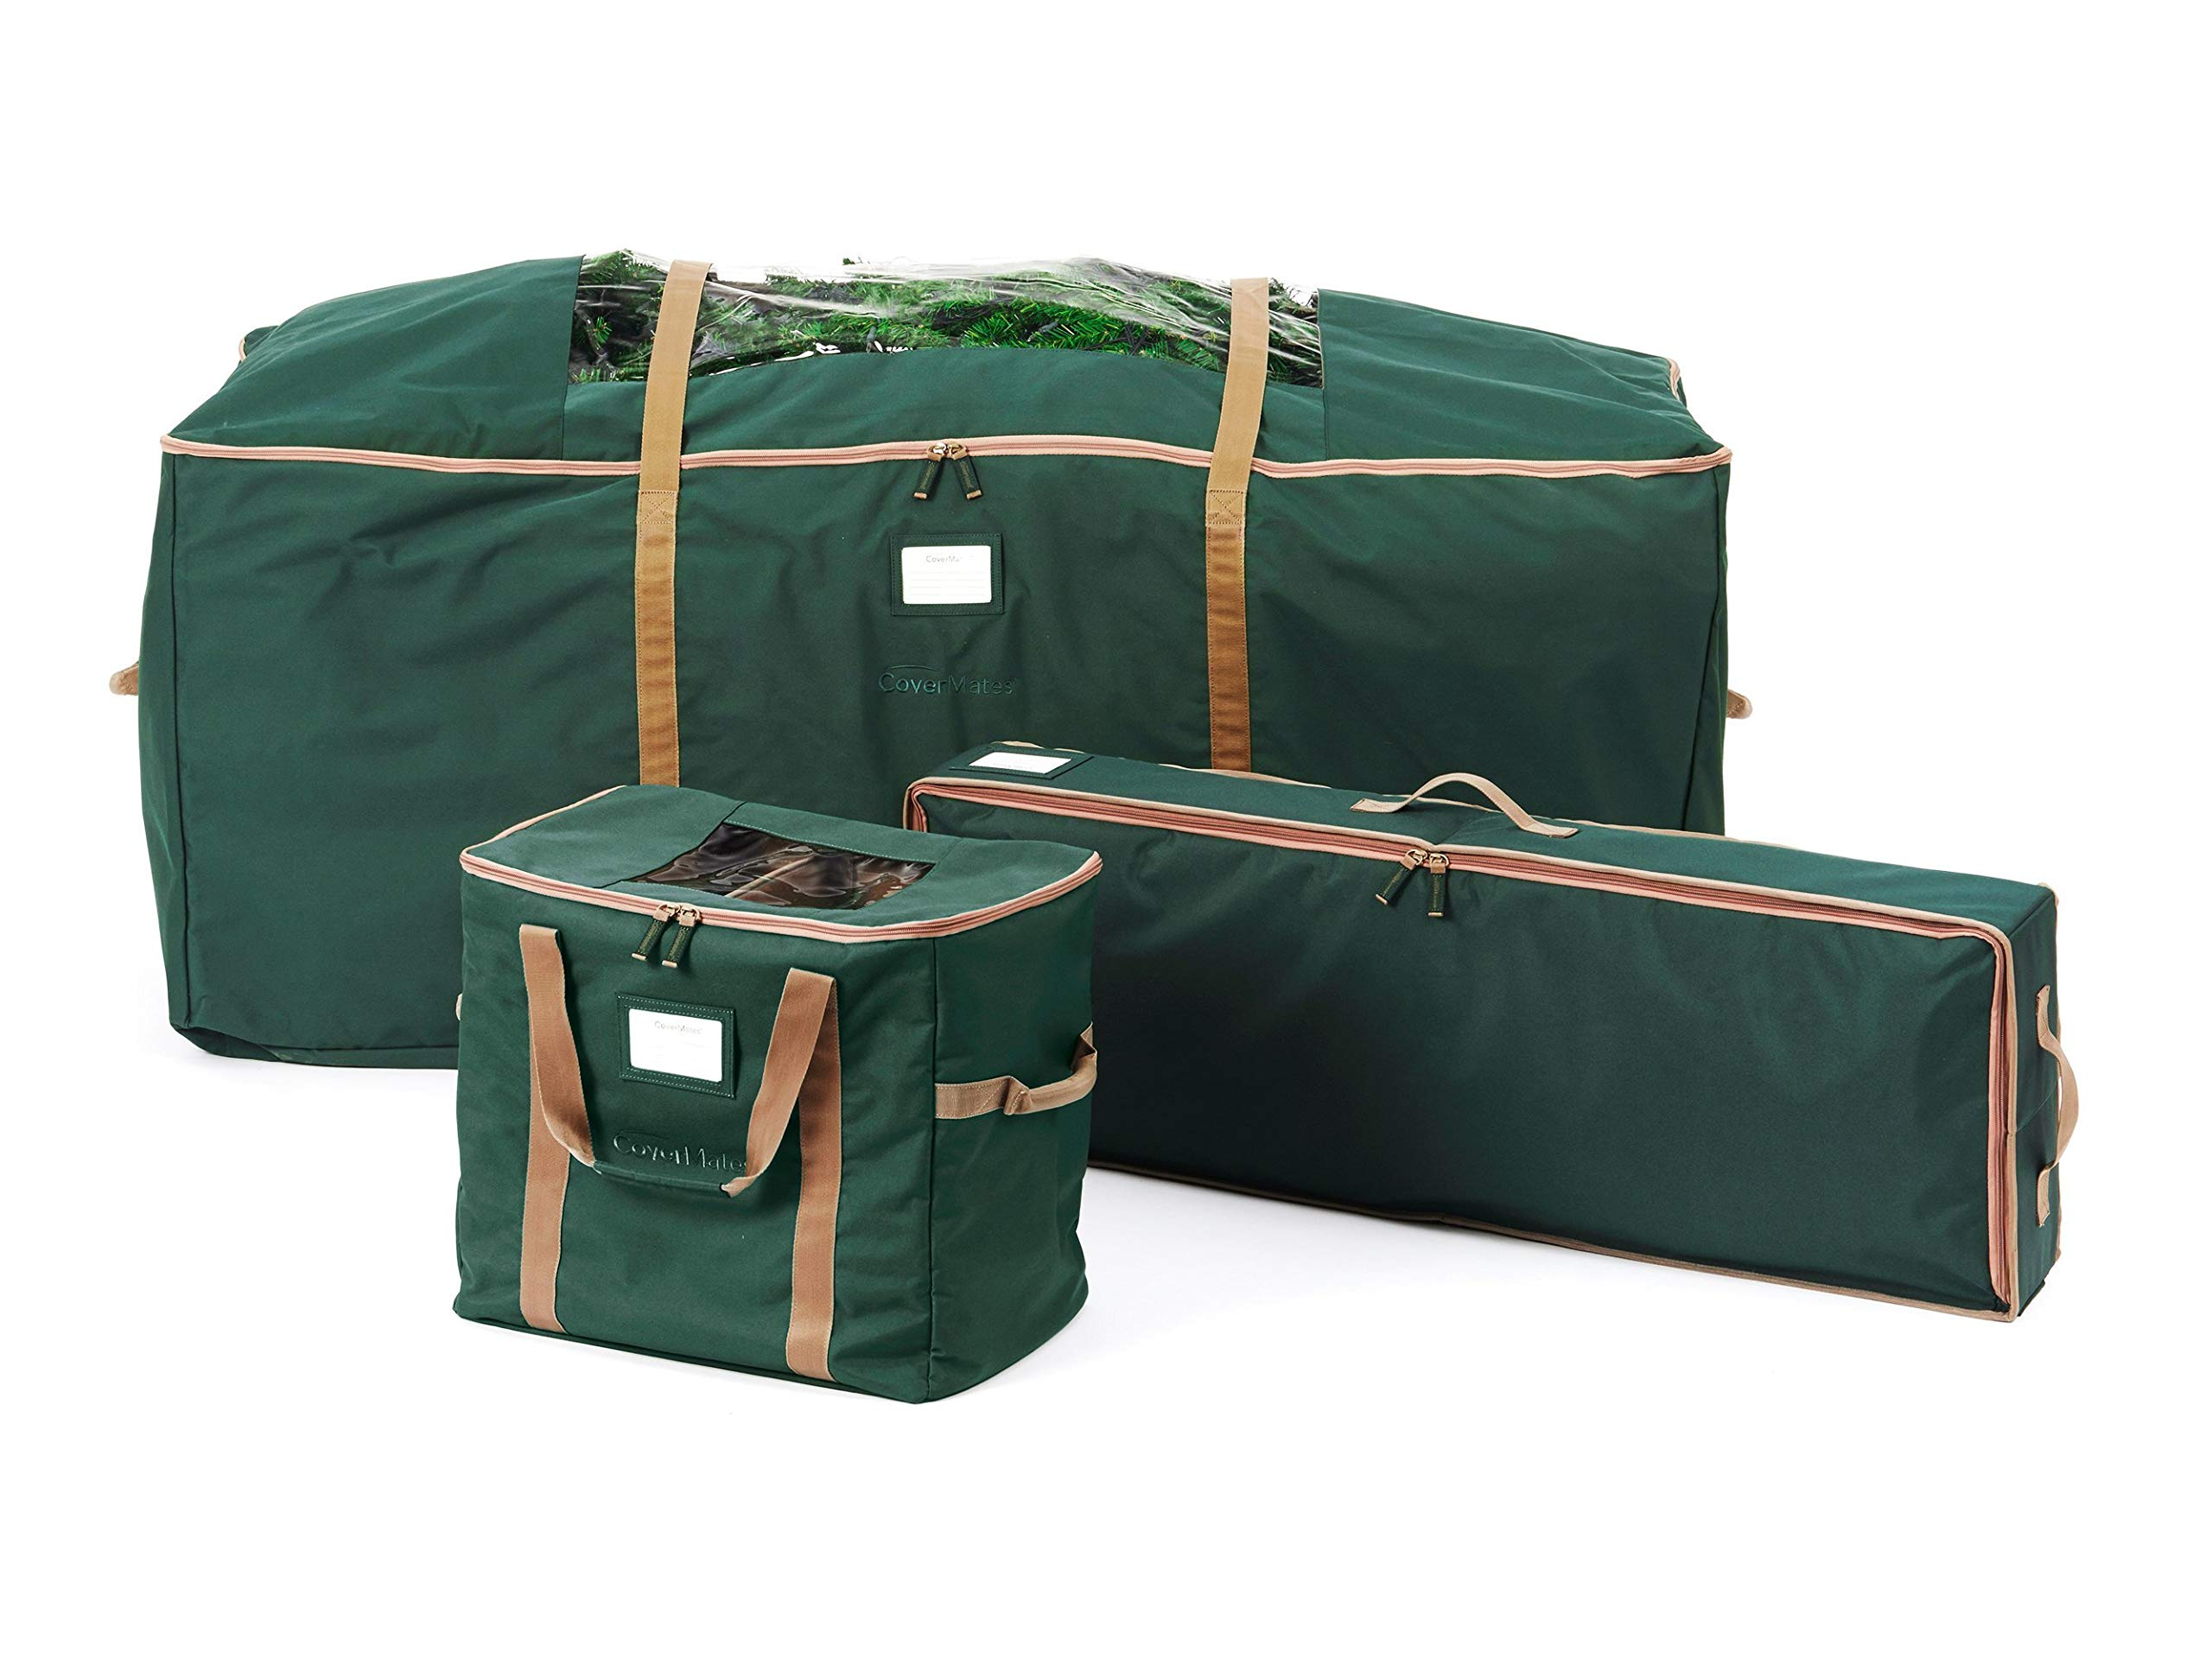 CoverMates – 3PC Holiday Storage Set (48'' Tree Storage Bag + Deluxe Gift Wrap + 60PC Ornament Storage Bag) – 3 Year Warranty- Green